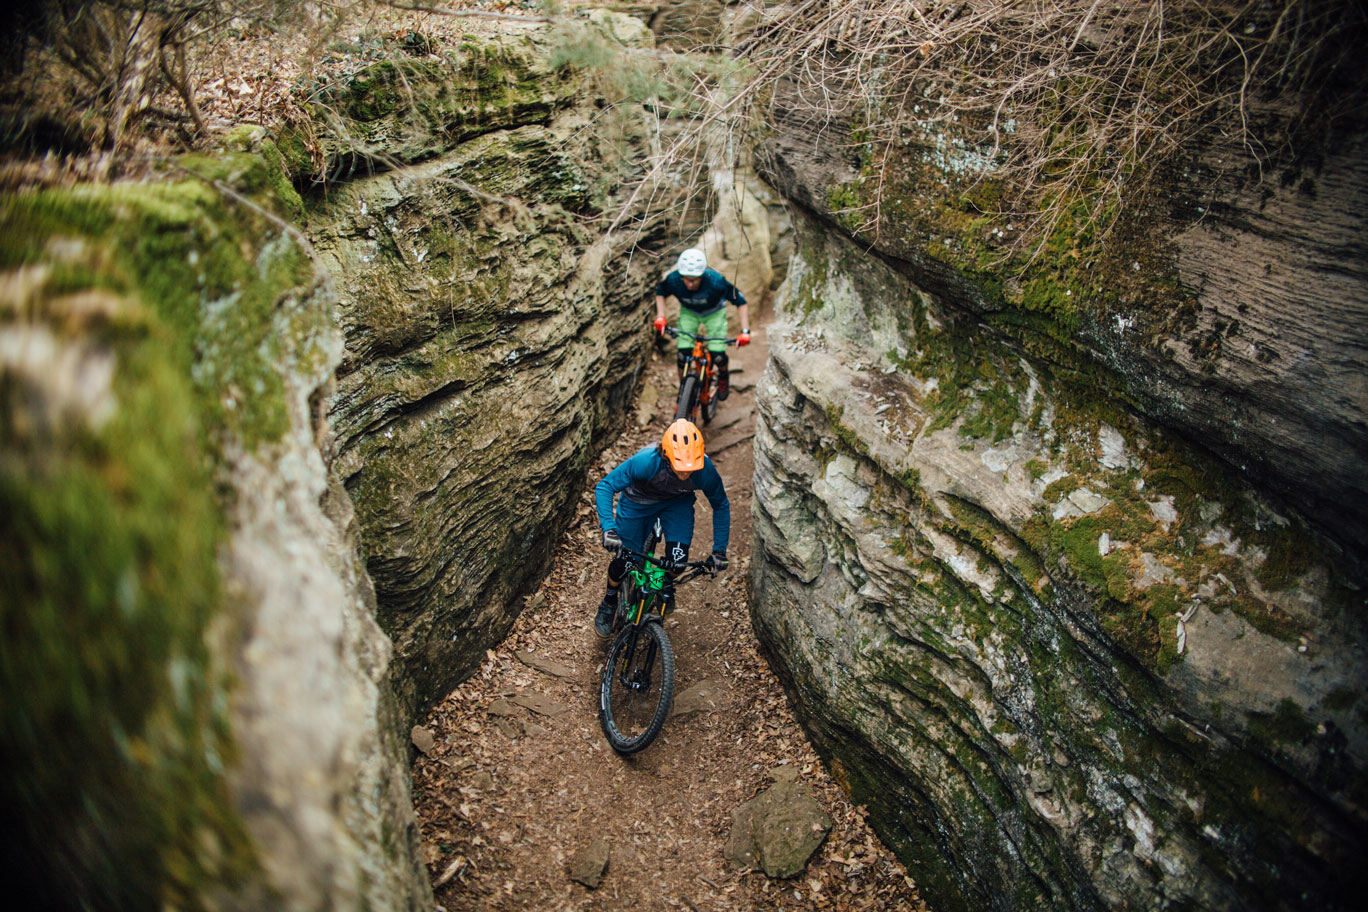 arkansas mountain biking joey schusler